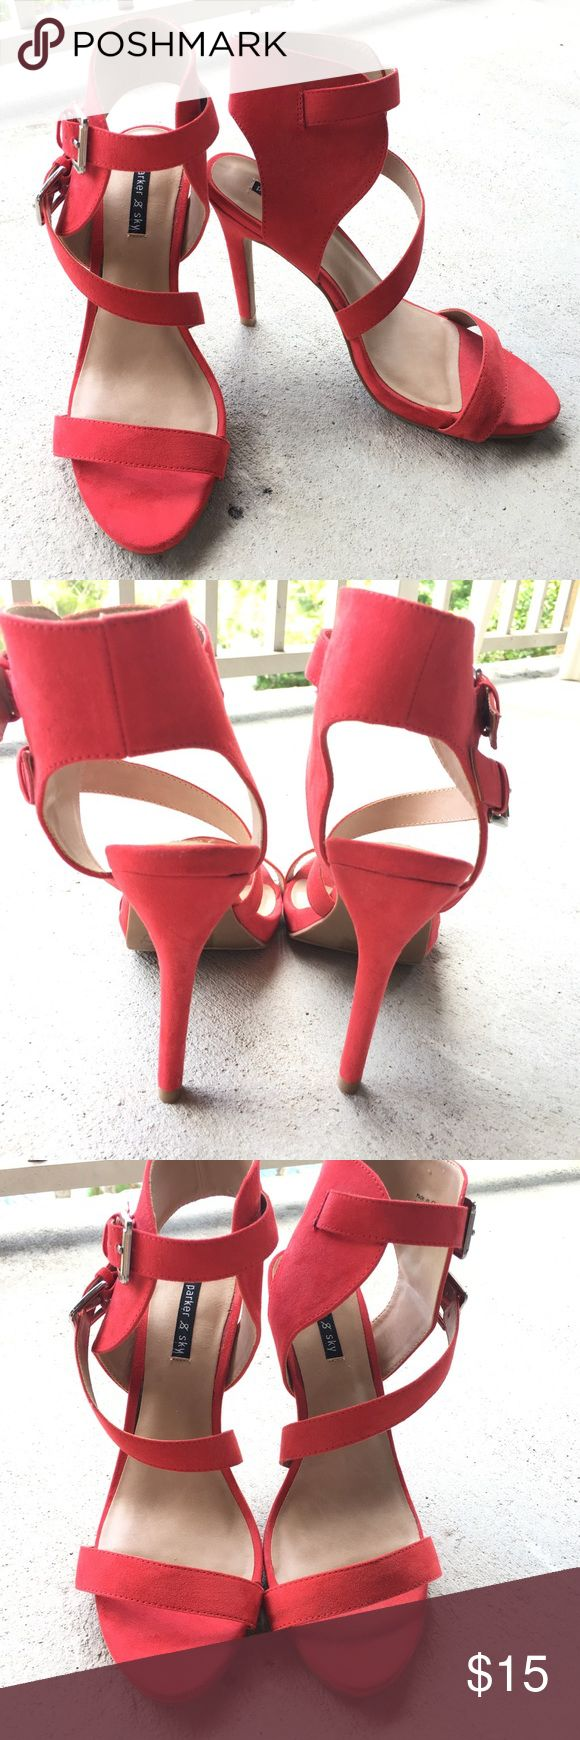 """Red strappy heels Worn only once, great condition! Just don't wear them anymore. About 4"""" heel- not too high! Shoes Heels"""